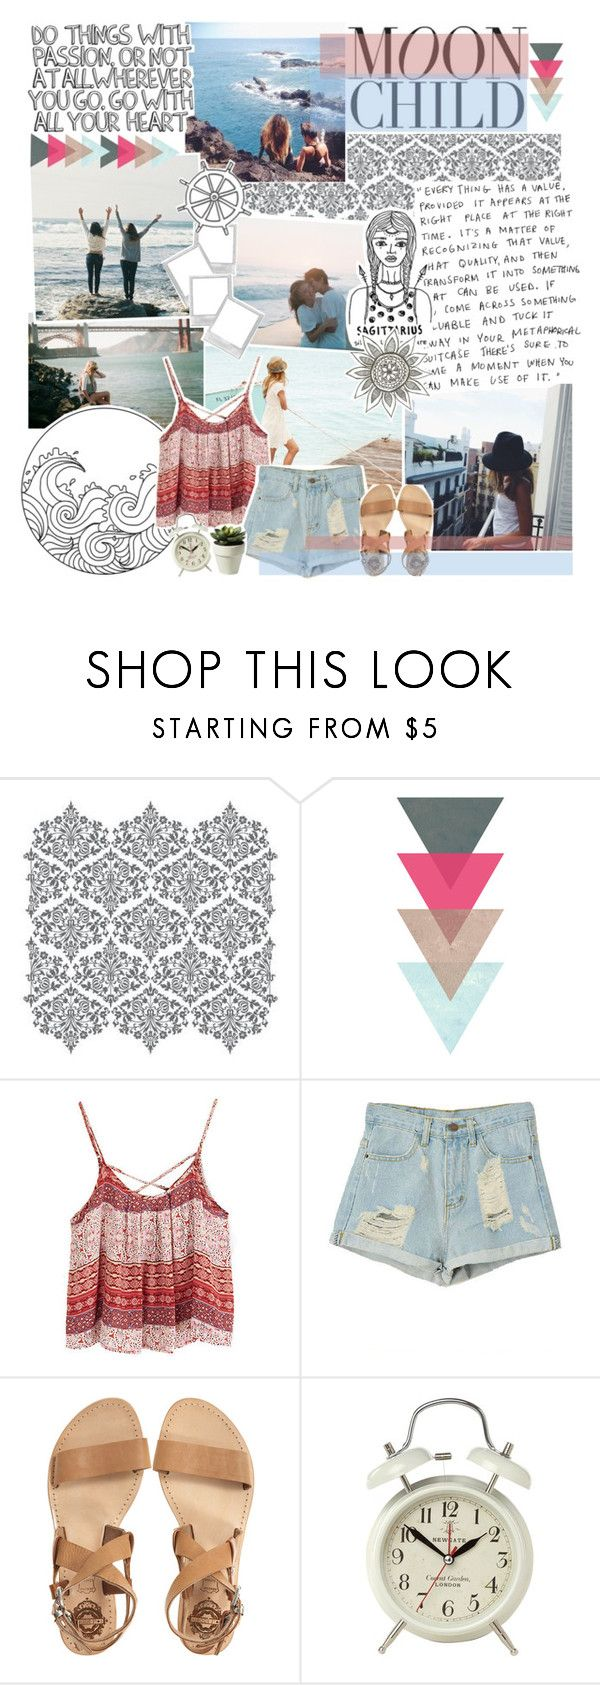 """This big dog will fight when you rattle his cage."" by toripete ❤ liked on Polyvore featuring Amy Butler, ESPRIT, WALL, Bohemia, Sol Sana, Newgate and country"